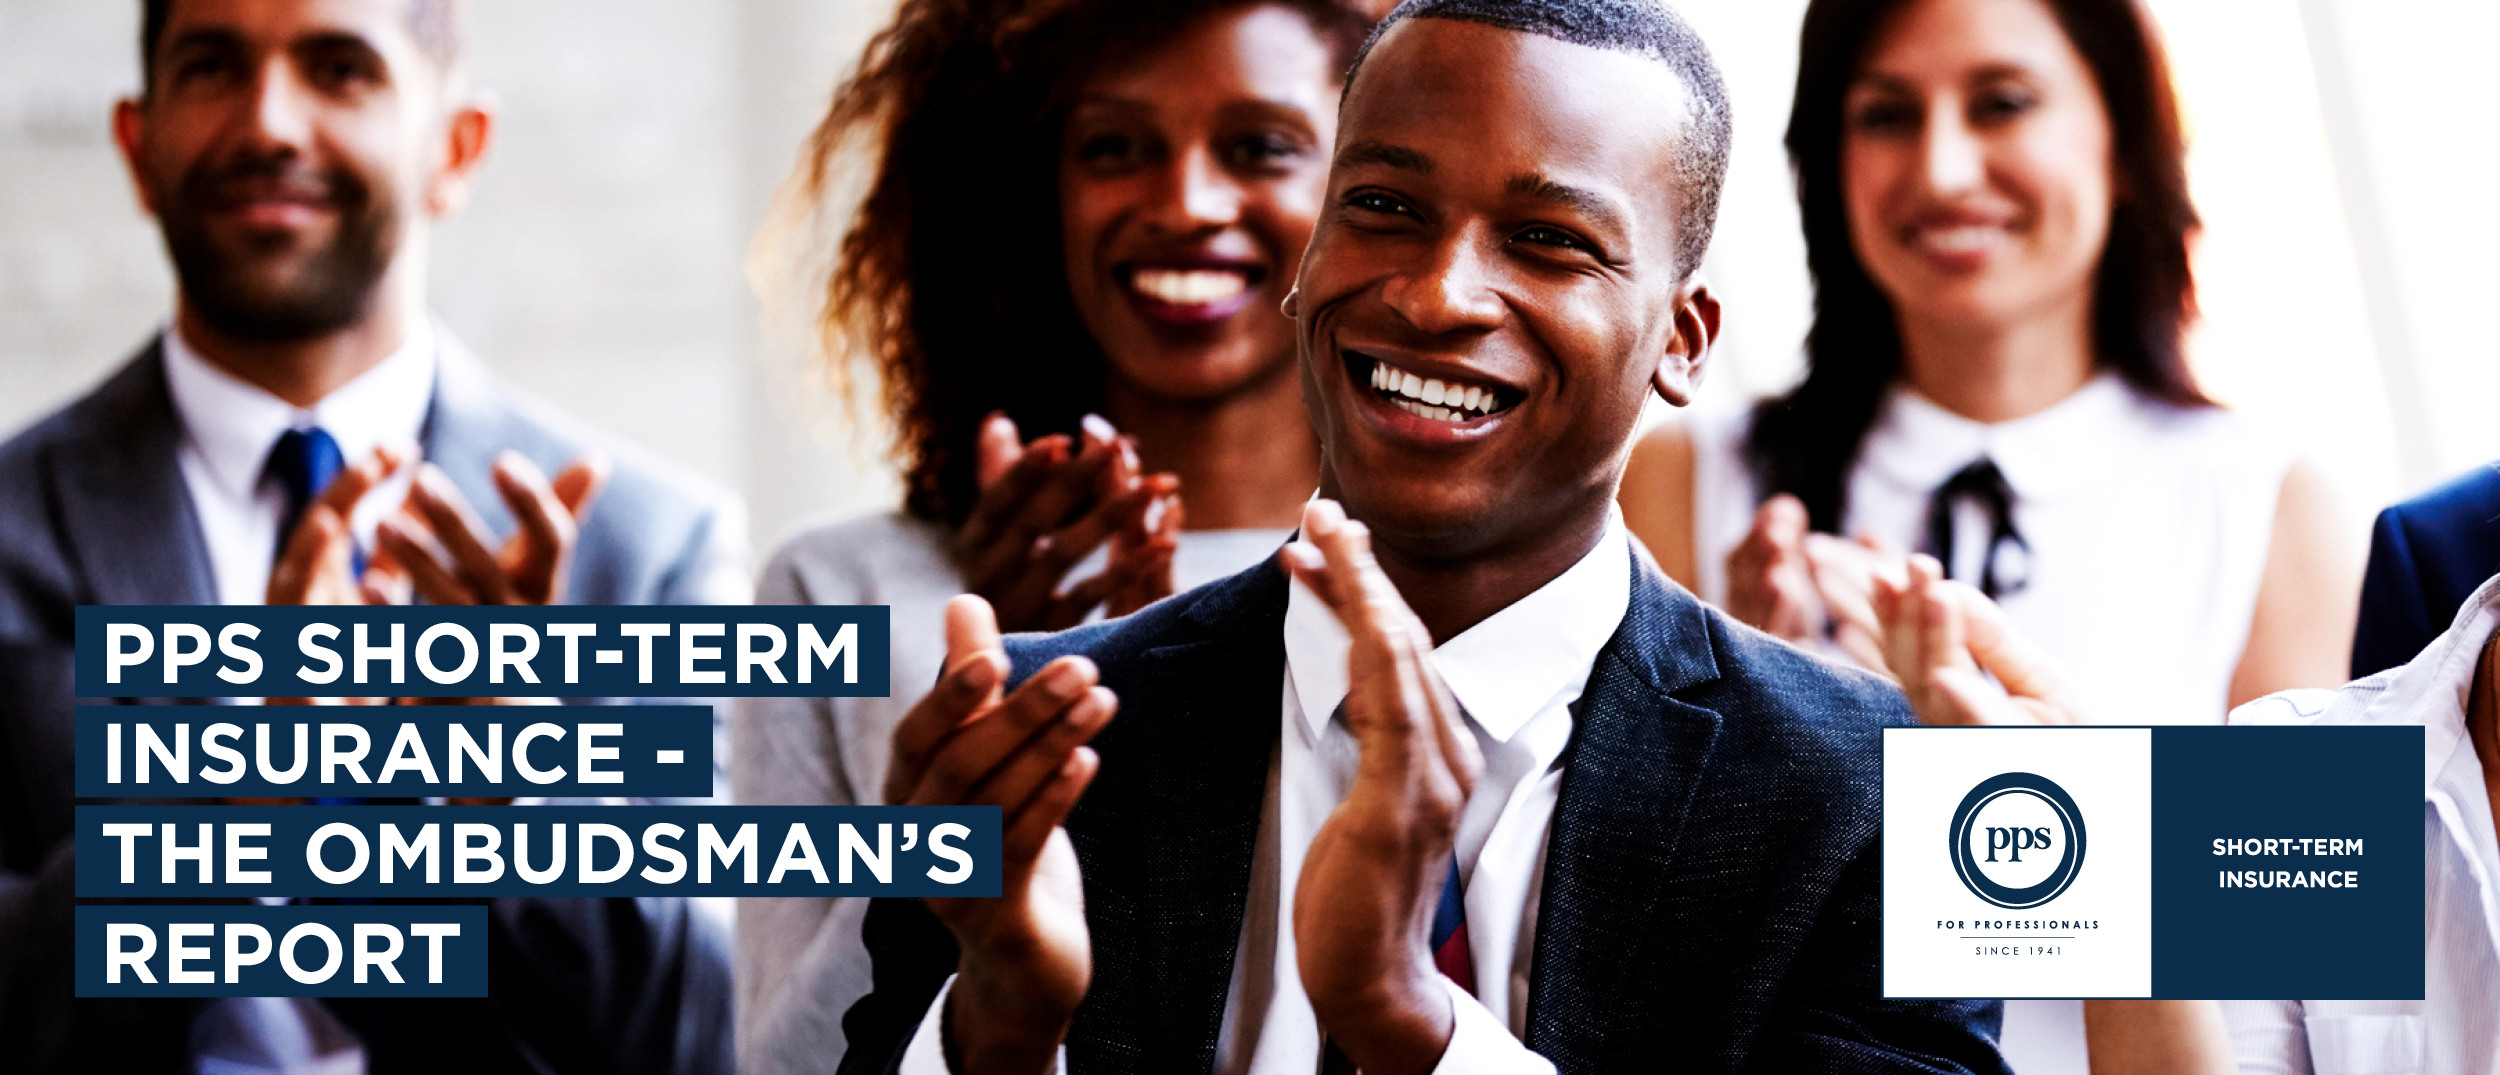 PPS SHORT-TERM INSURANCE - THE OMBUDSMAN'S REPORT